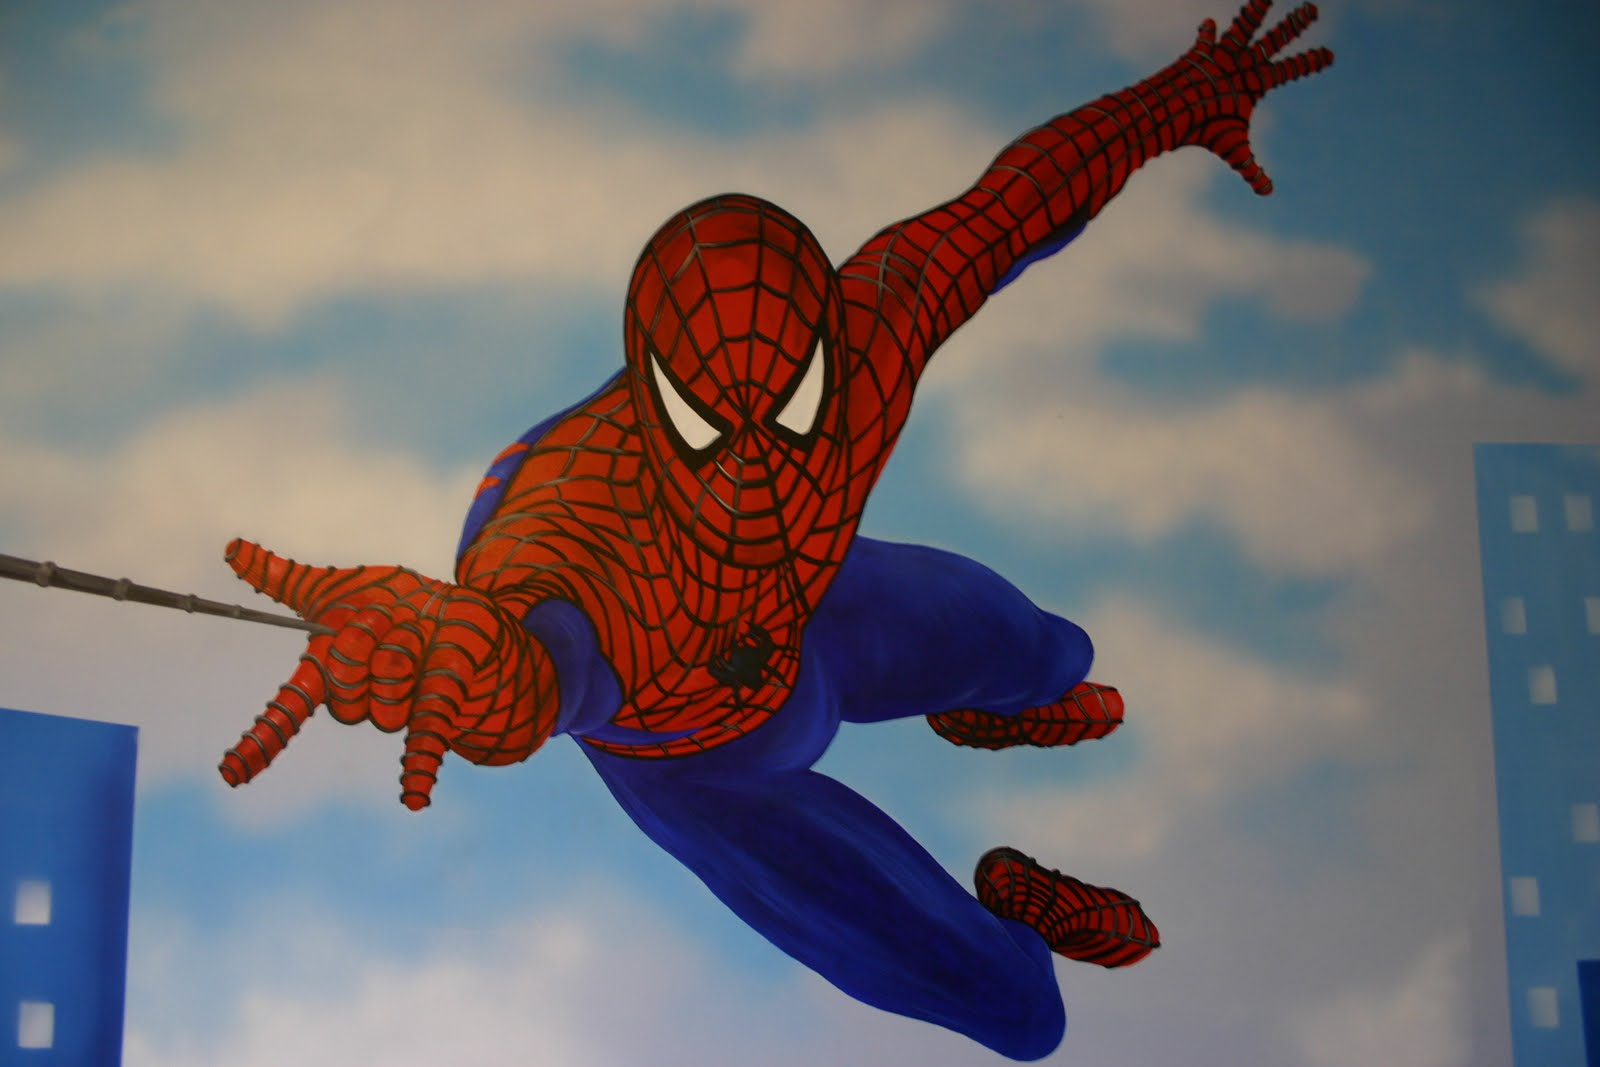 mural designs quot the muralist quot spiderman wall mural pin spider man 3 wallpapers stock photos on pinterest